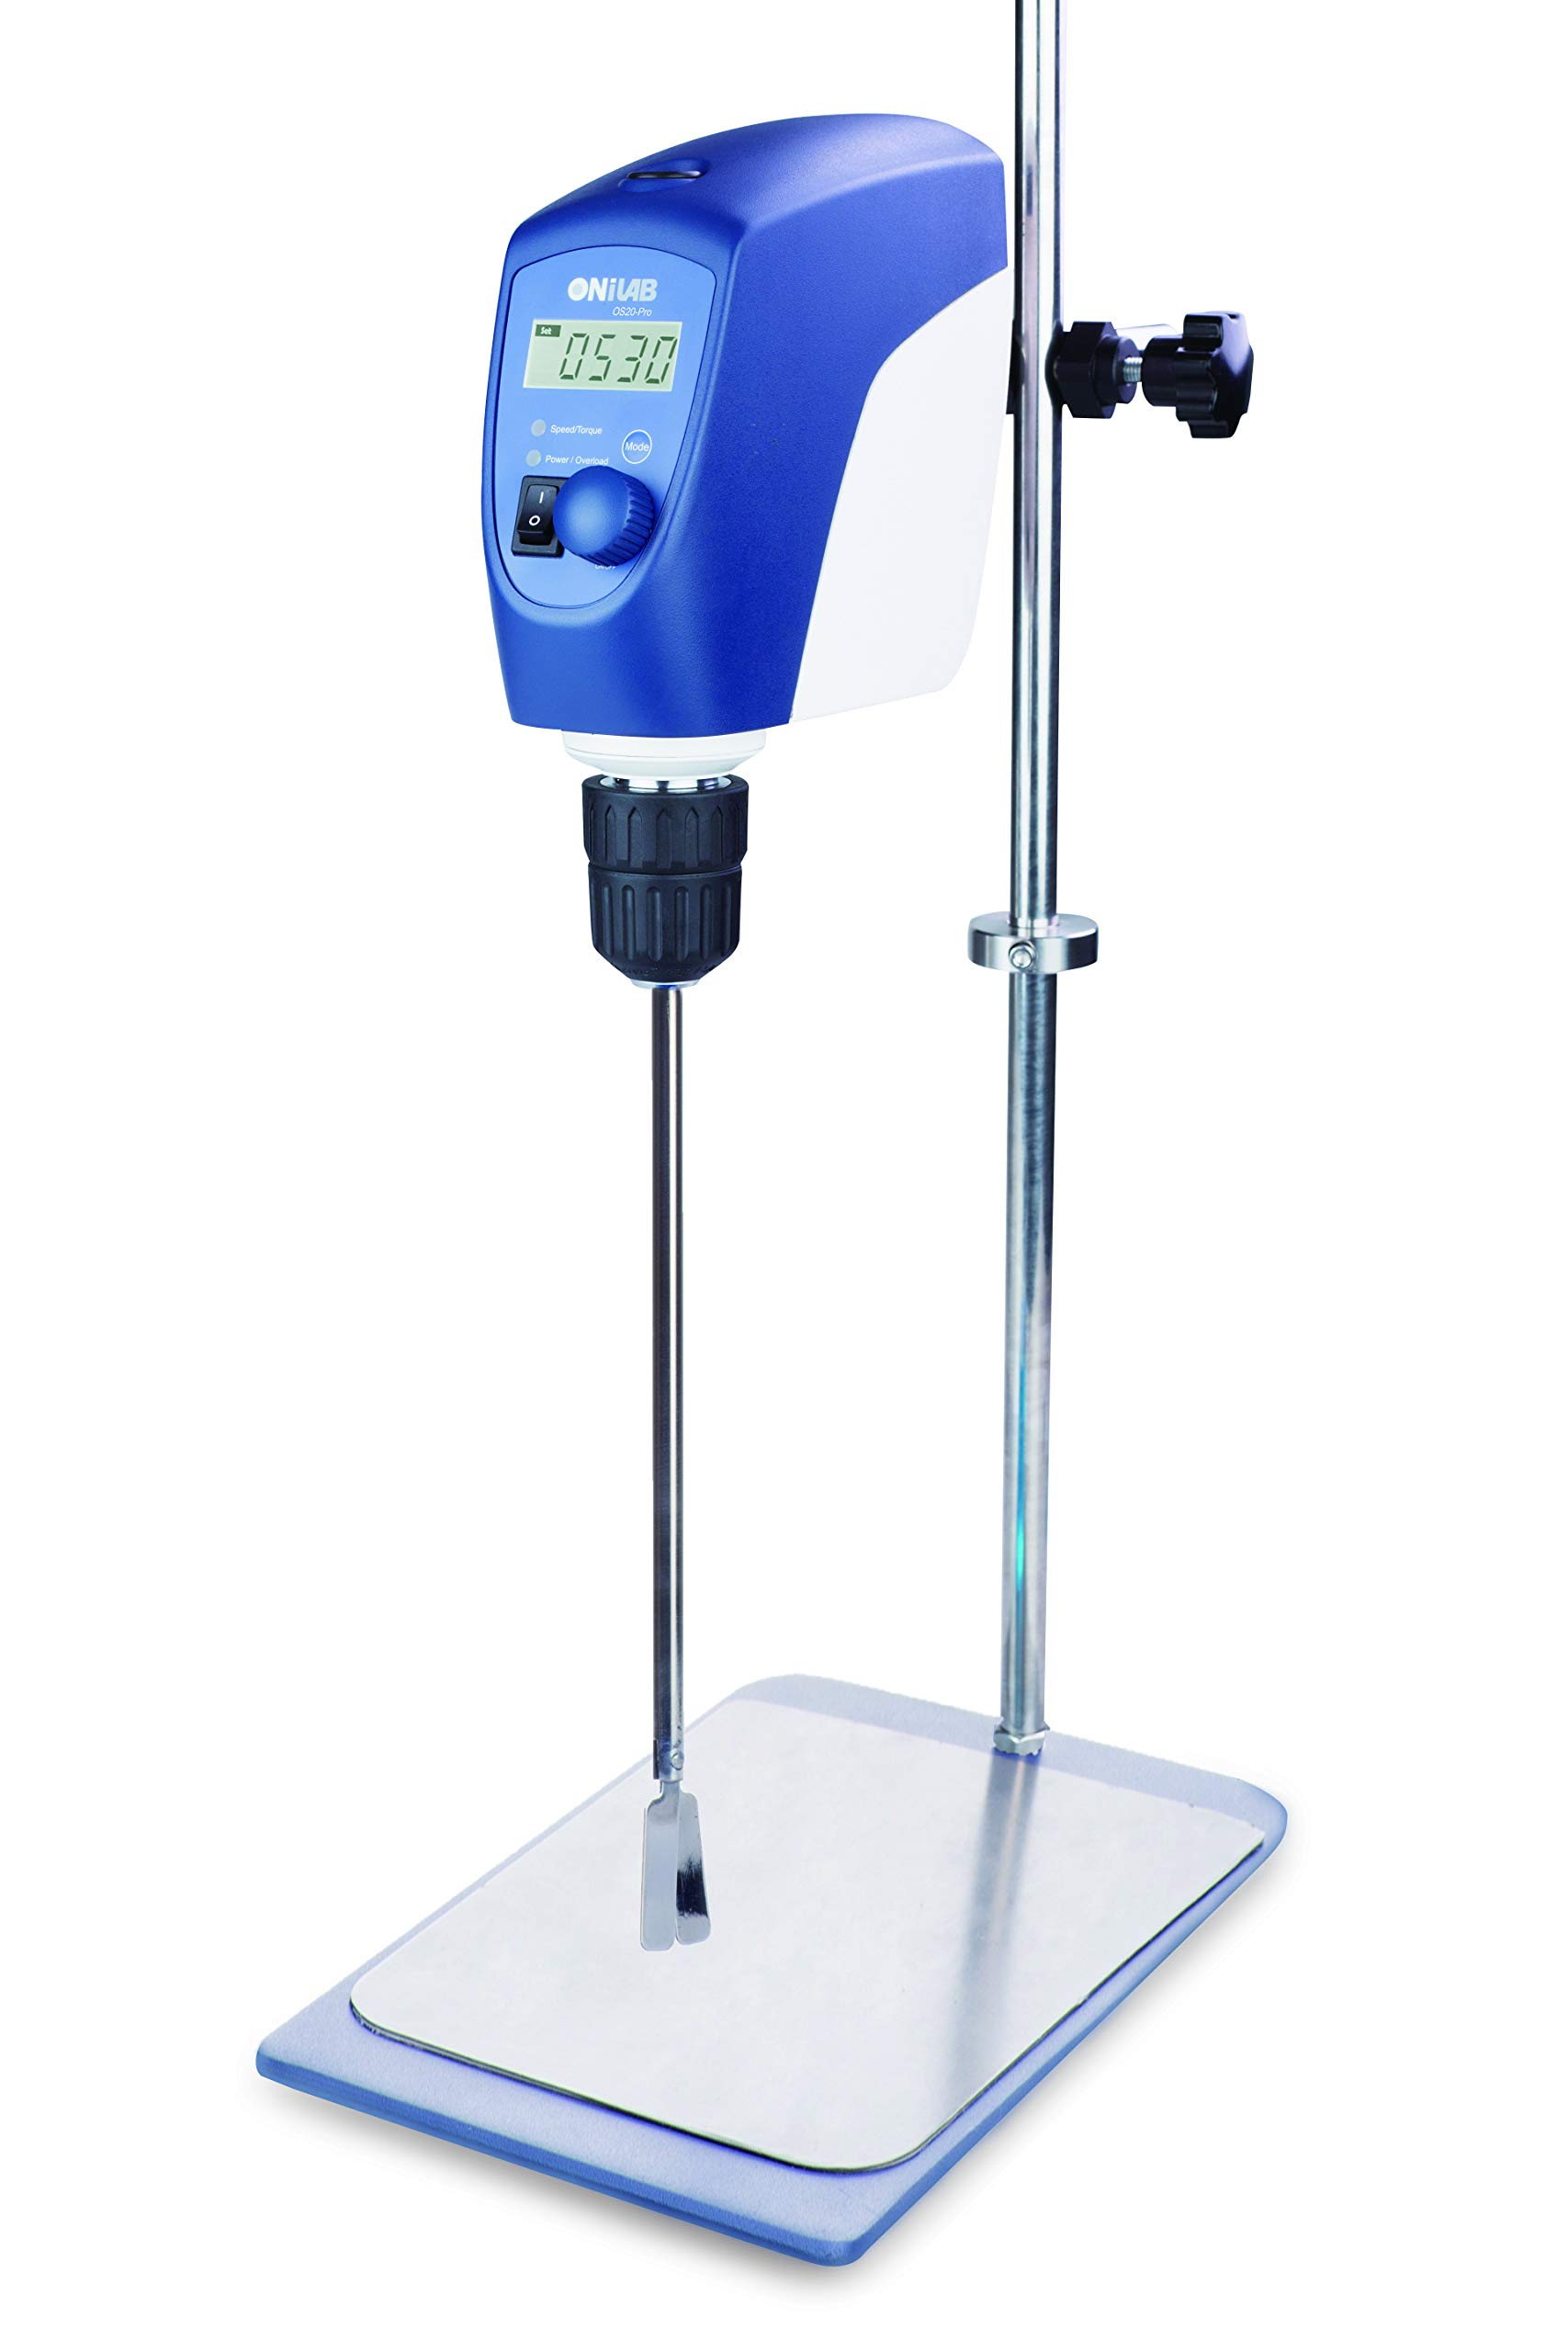 ONiLAB Electric Overhead Stirrer, LCD Digital Overhead Stirrer Mixer with Stirring Rod and Stand,,Powerful 20L ,10000 mPas , 50~2200RPM (Stand Included), Dark Blue